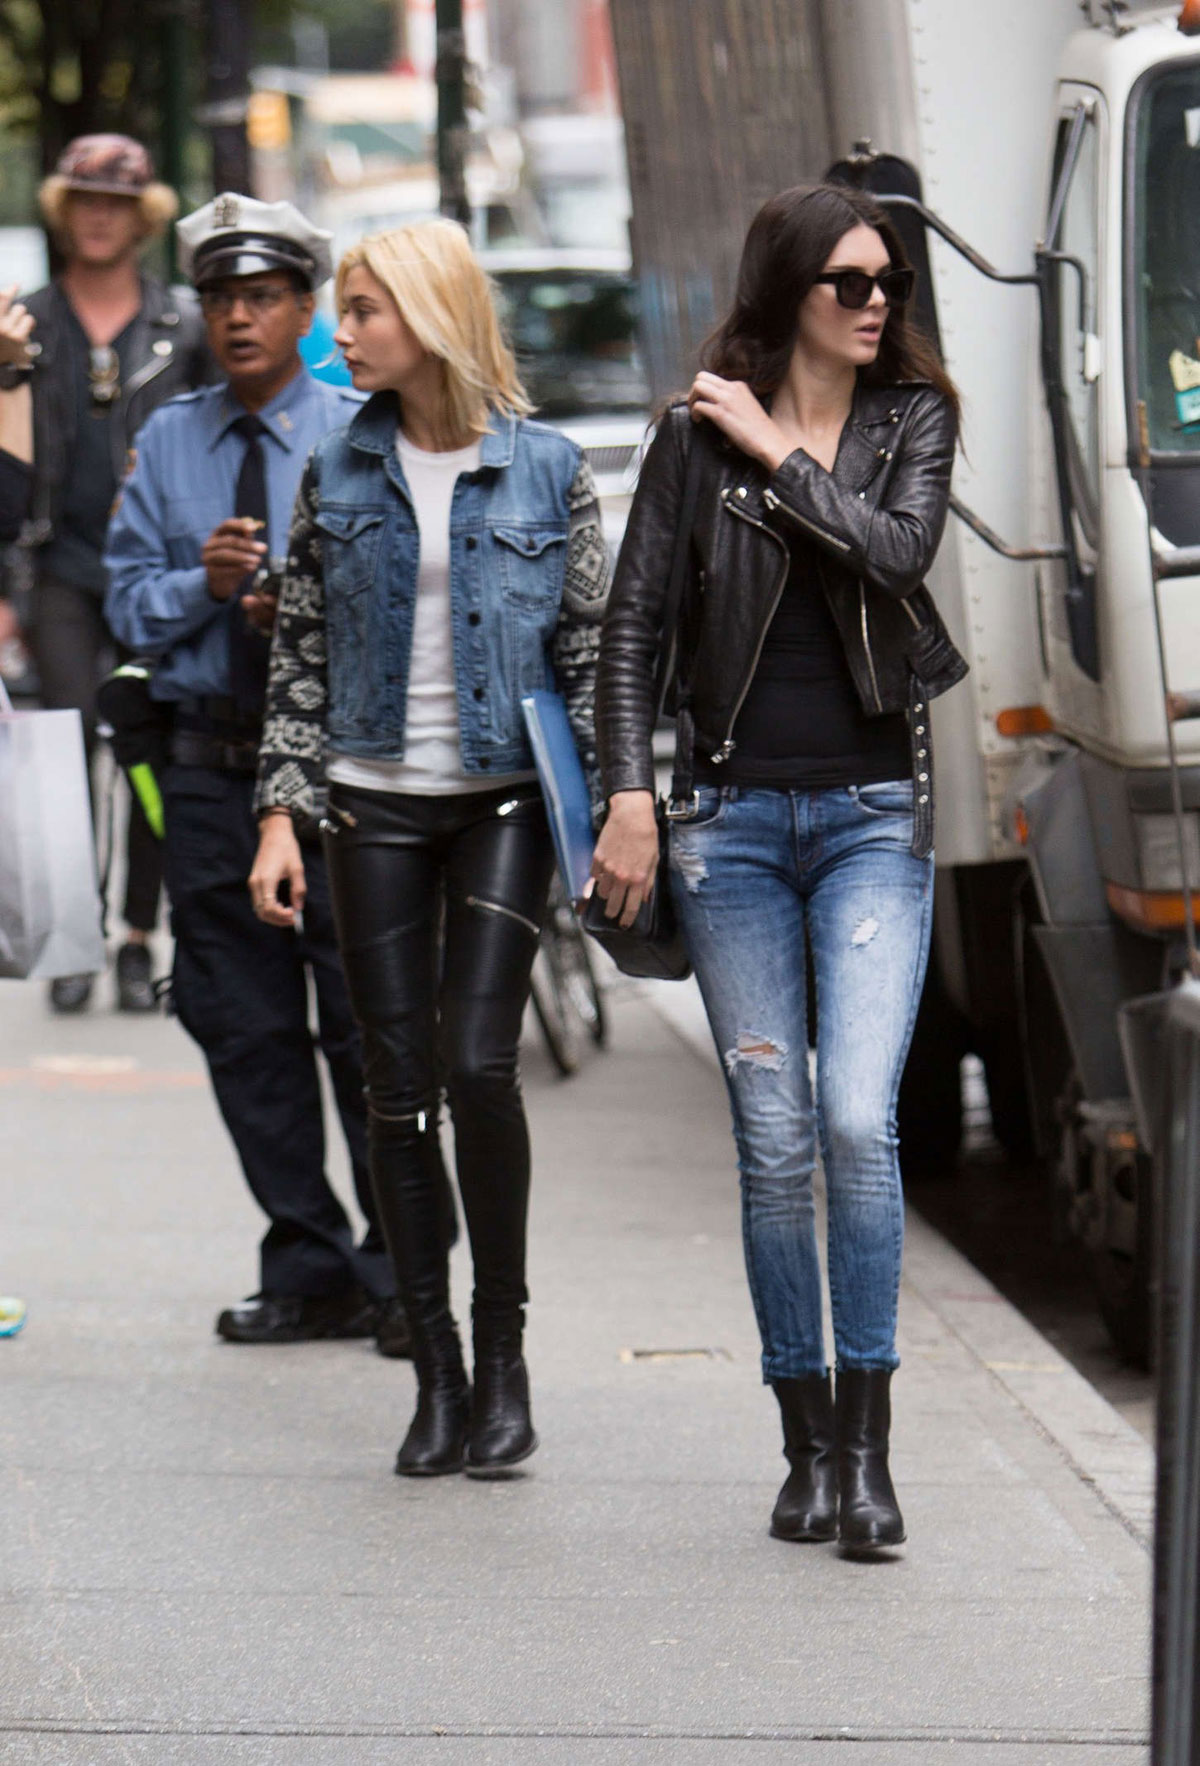 Kendall Jenner And Hailey Baldwin Spotted Out In Nyc